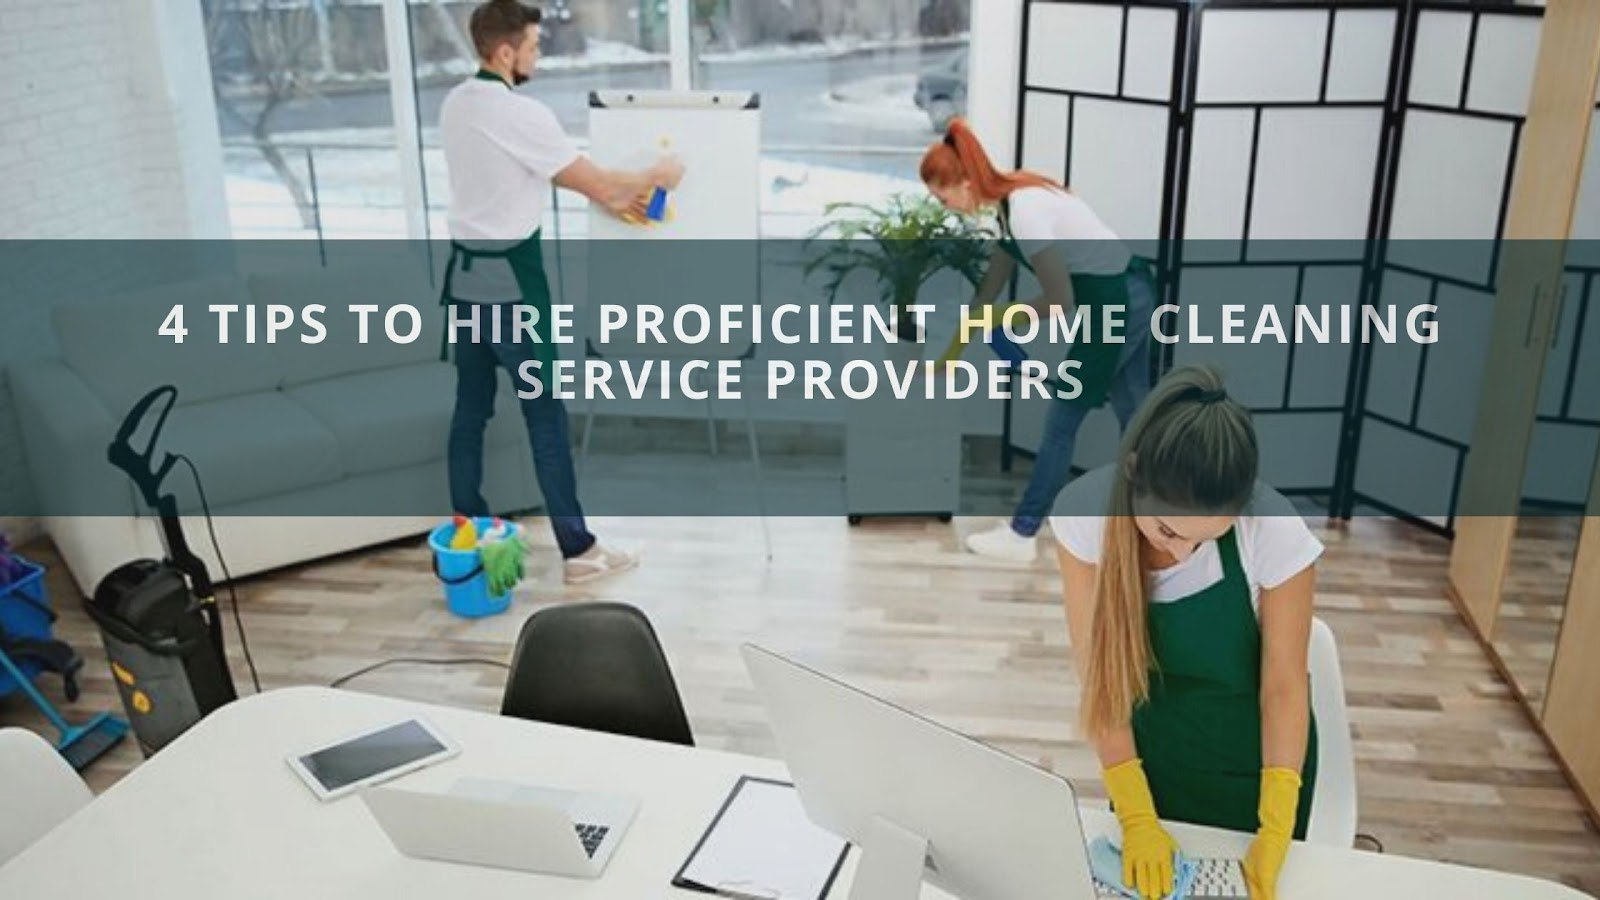 4 Tips To Hire Proficient Home Cleaning Service Providers